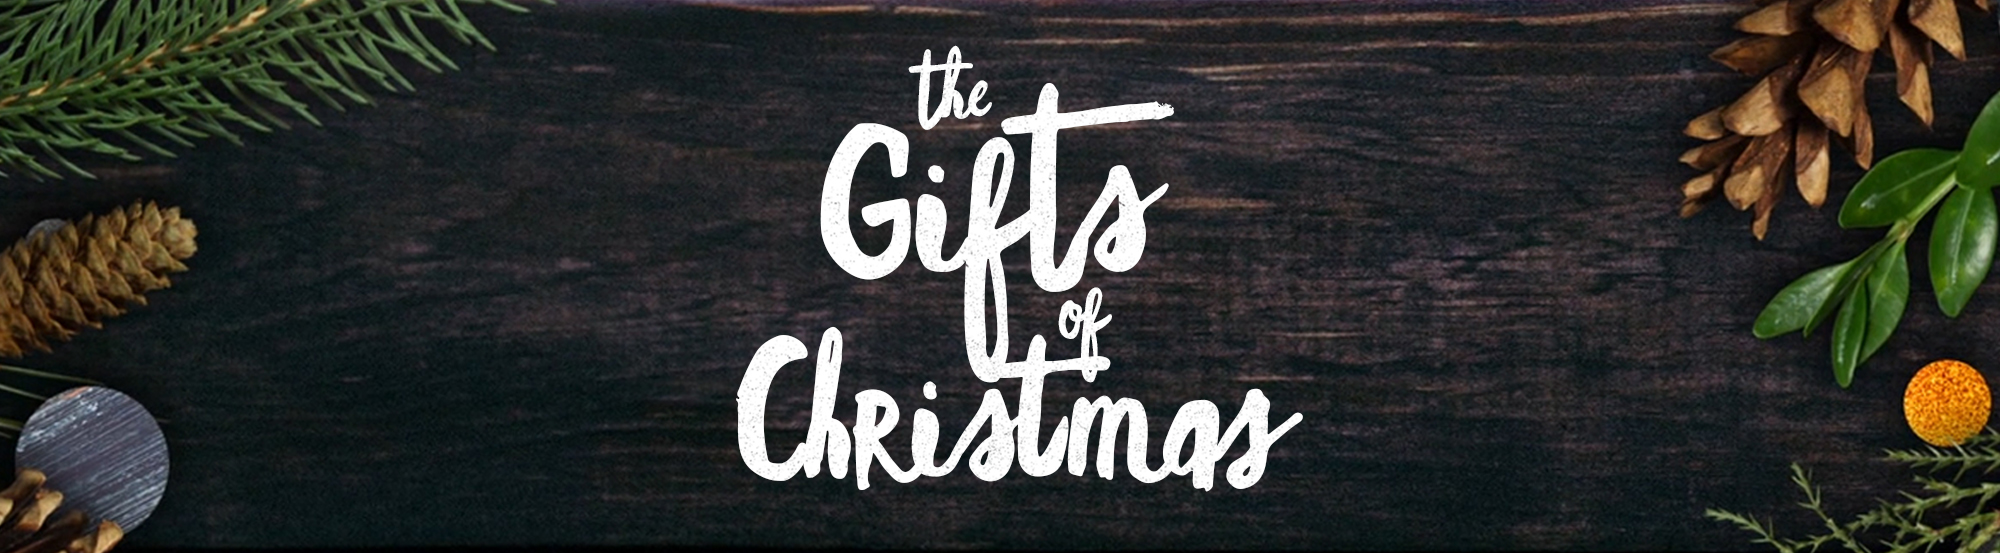 The Gifts of Christmas main